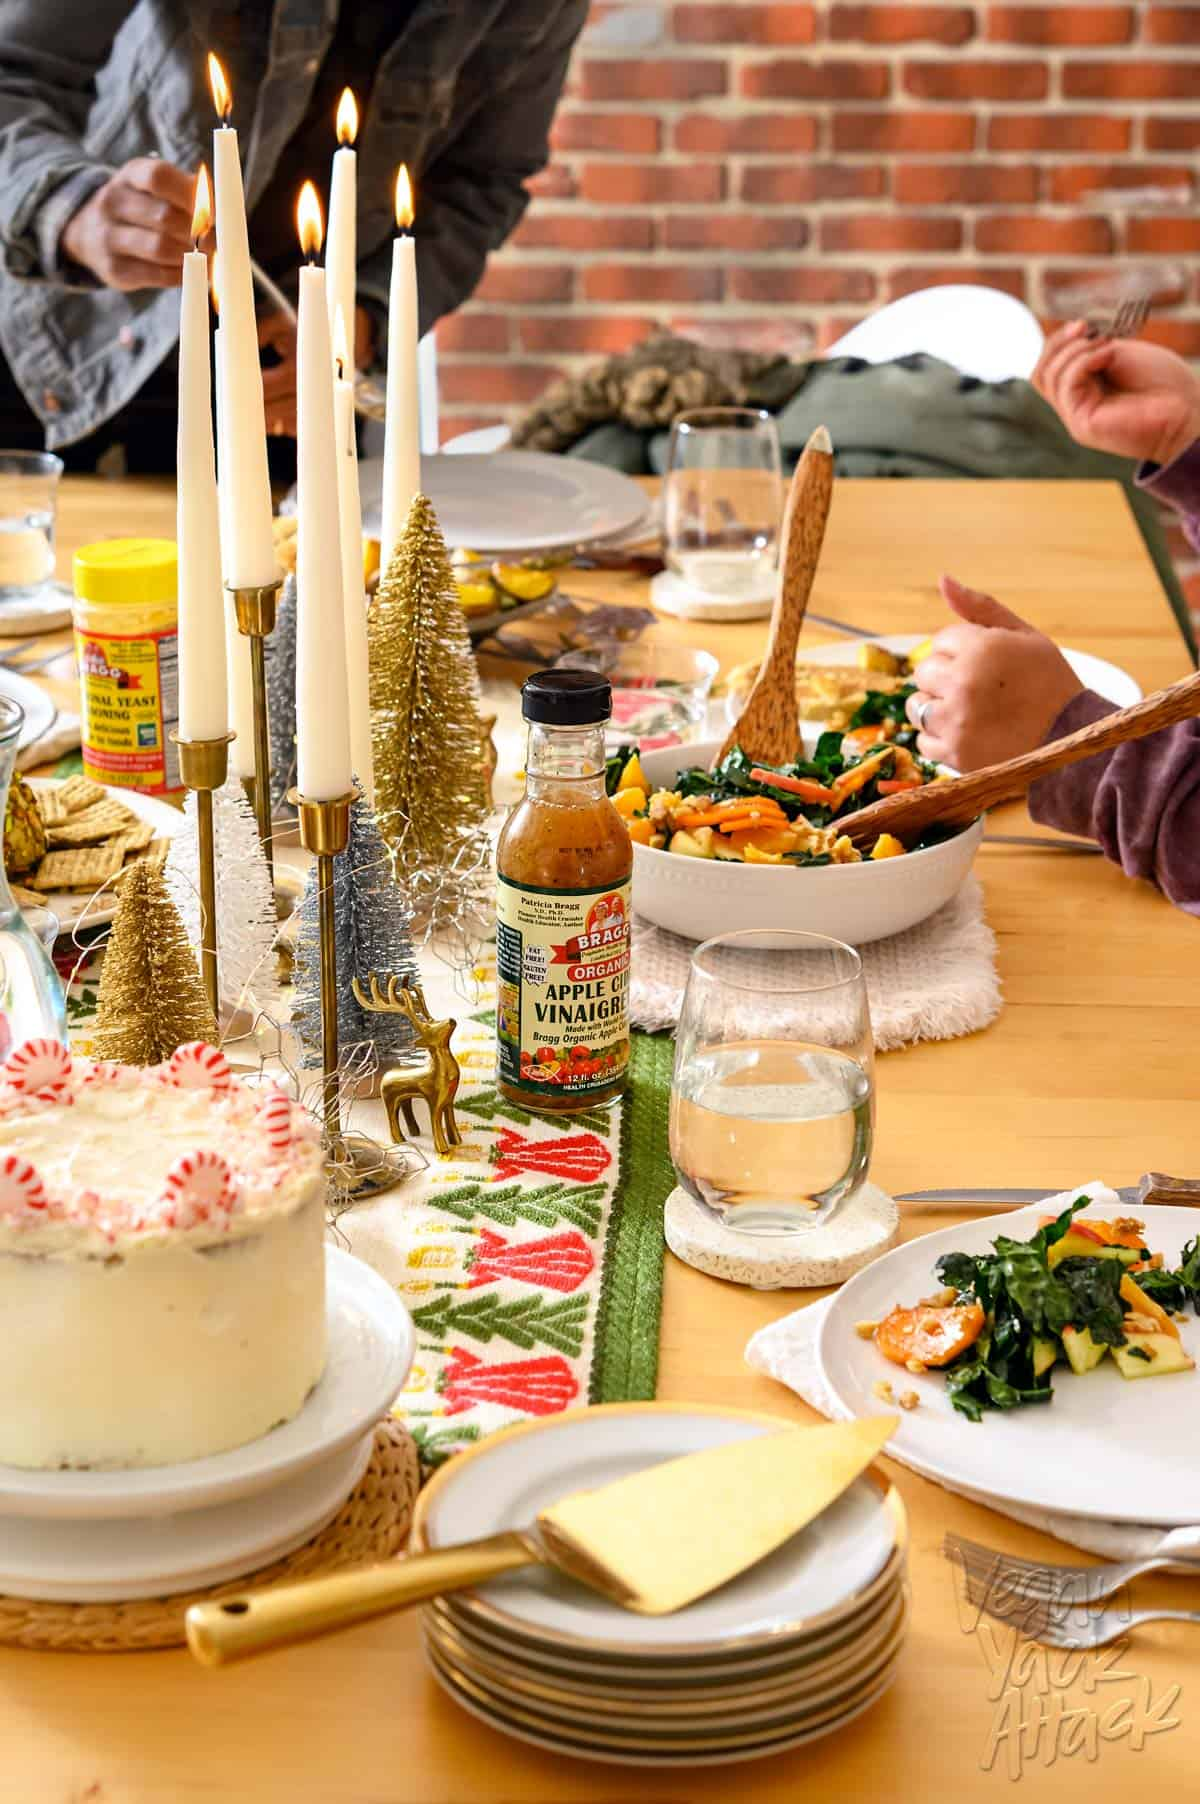 Image of an ultimate vegan holiday dinner spread with table runner and dishes, including salad and cake